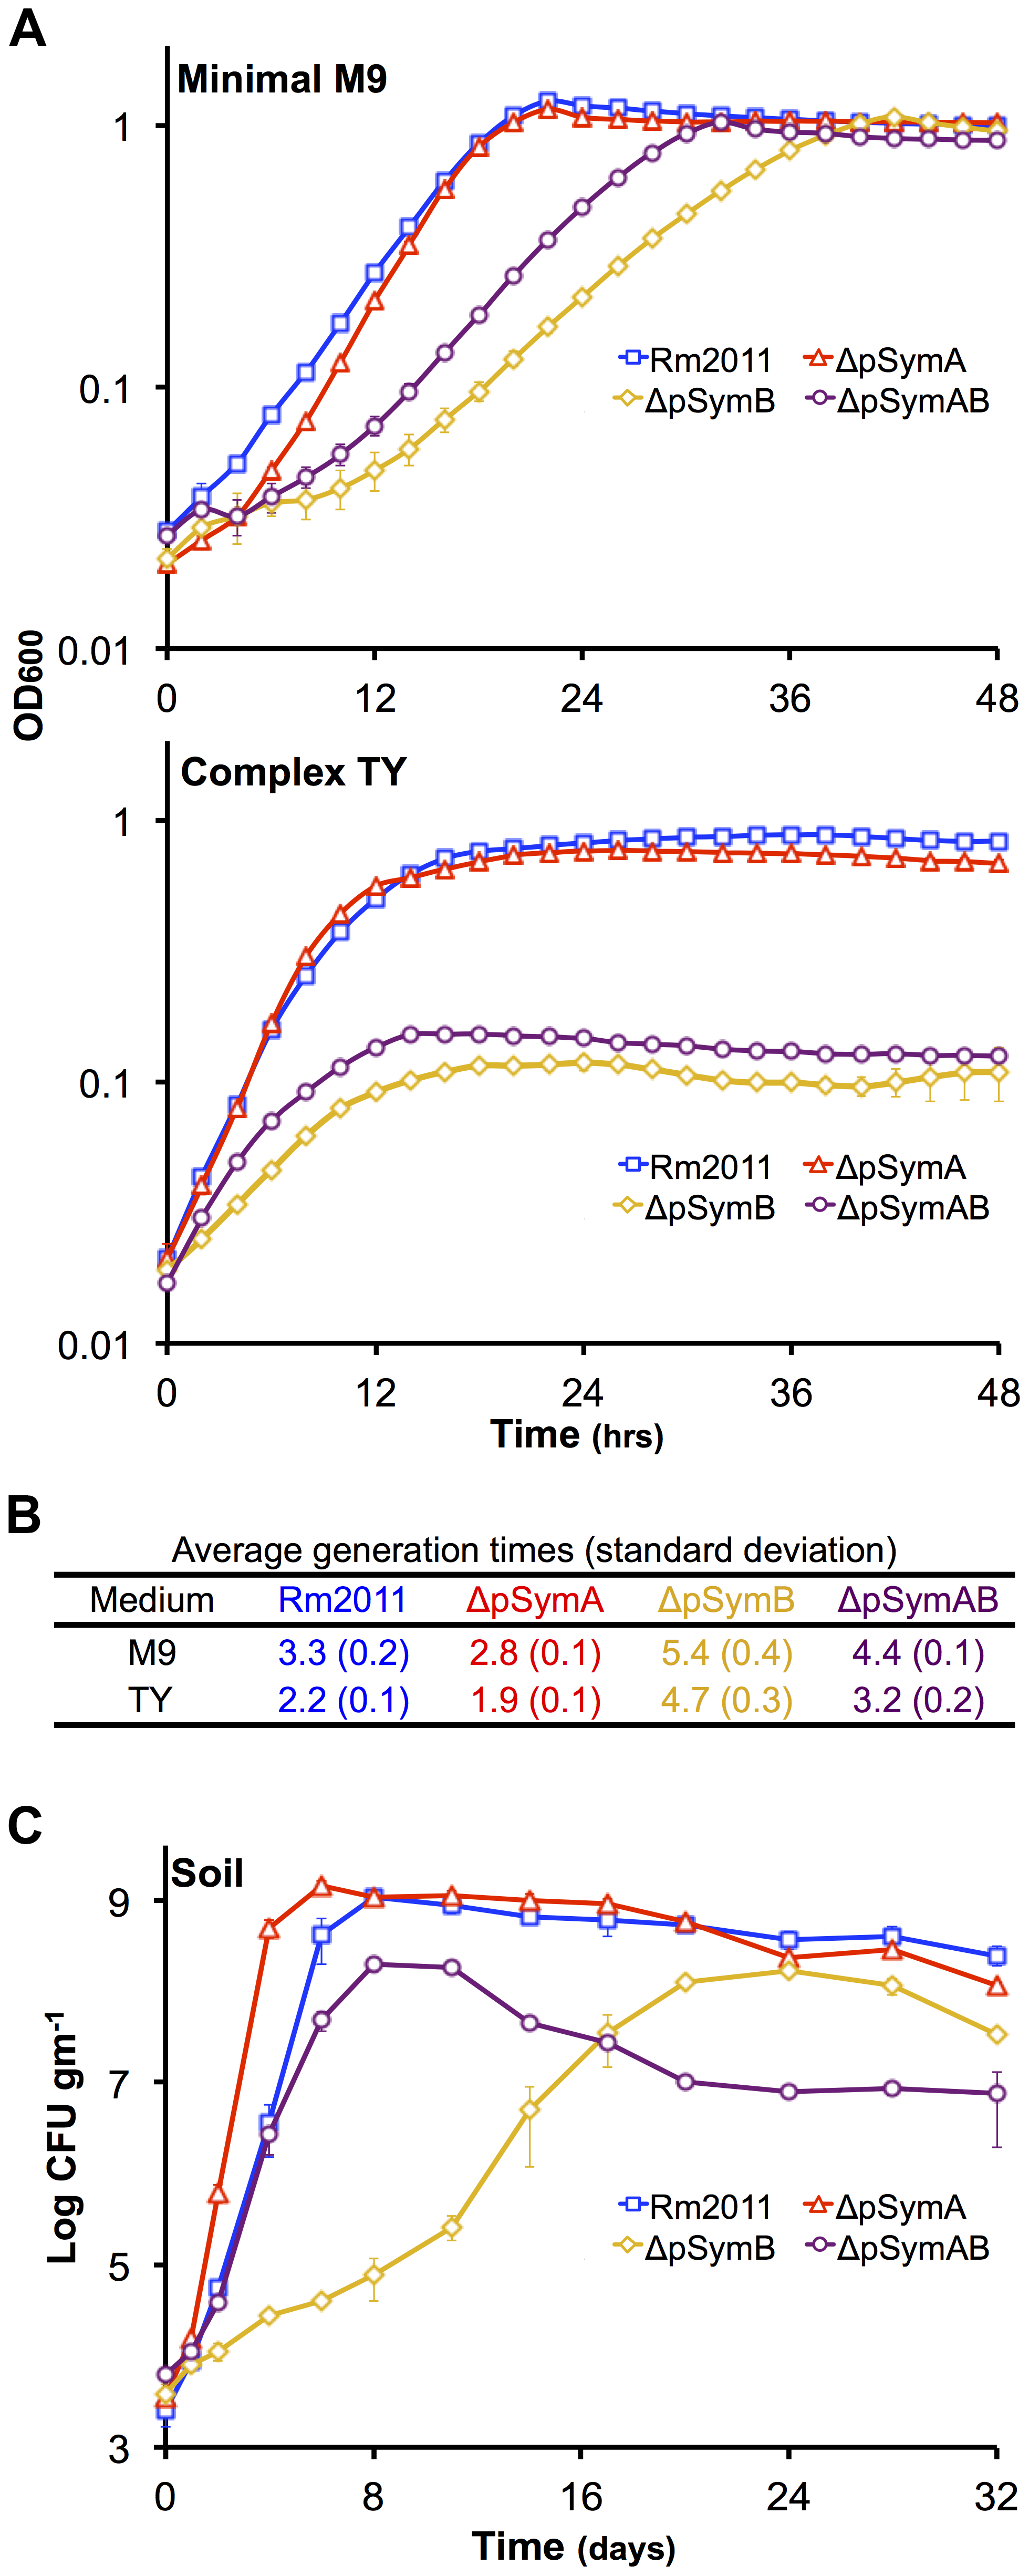 The effect of the removal of pSymA and/or pSymB on the growth of <i>S. meliloti</i>.